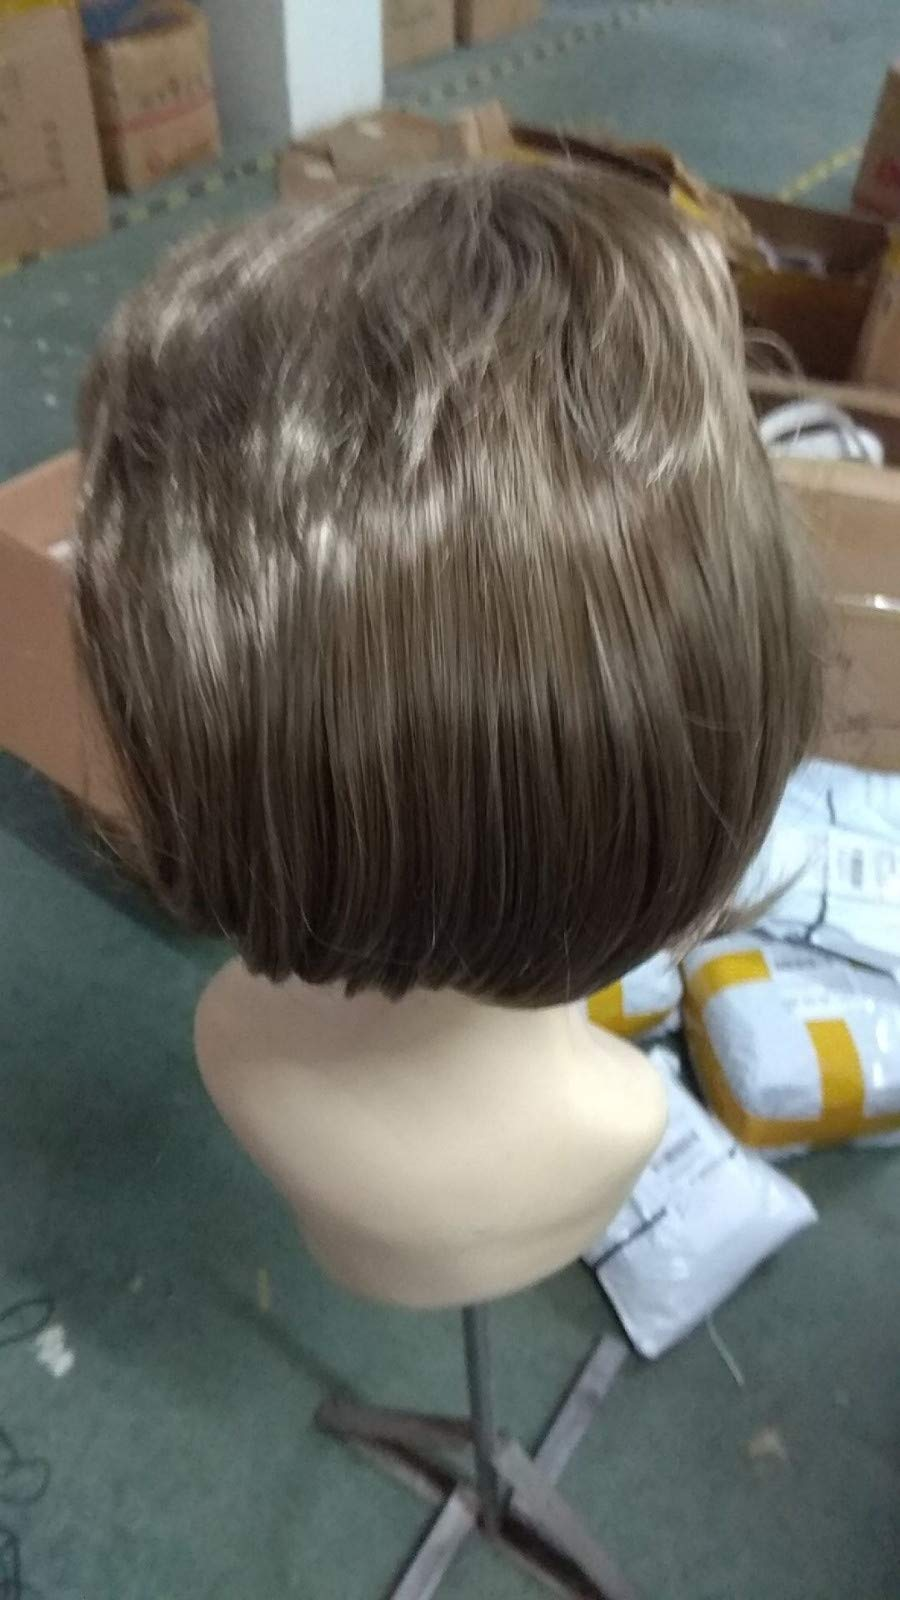 Wigs For Black Women 2019 Men Fashion Brown Short Hair Wig Perfect Carnivals Party Cosplay Festival by BOLUOYI (Image #8)